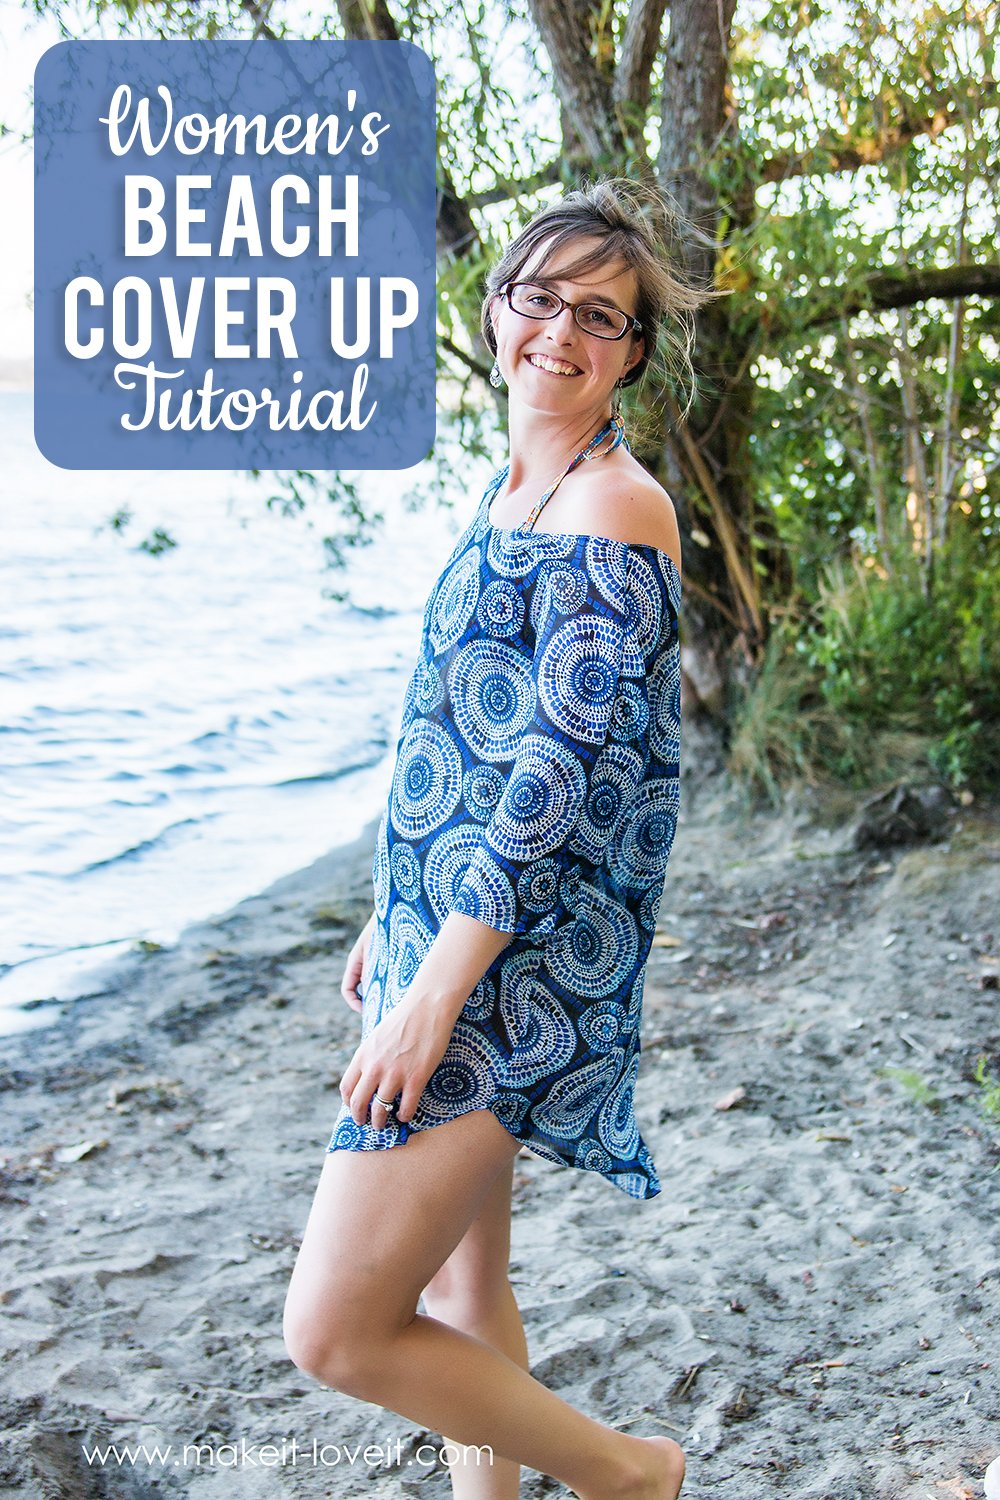 Women's Beach Cover Up Tutorial (PDF pattern pieces included, S-XL)